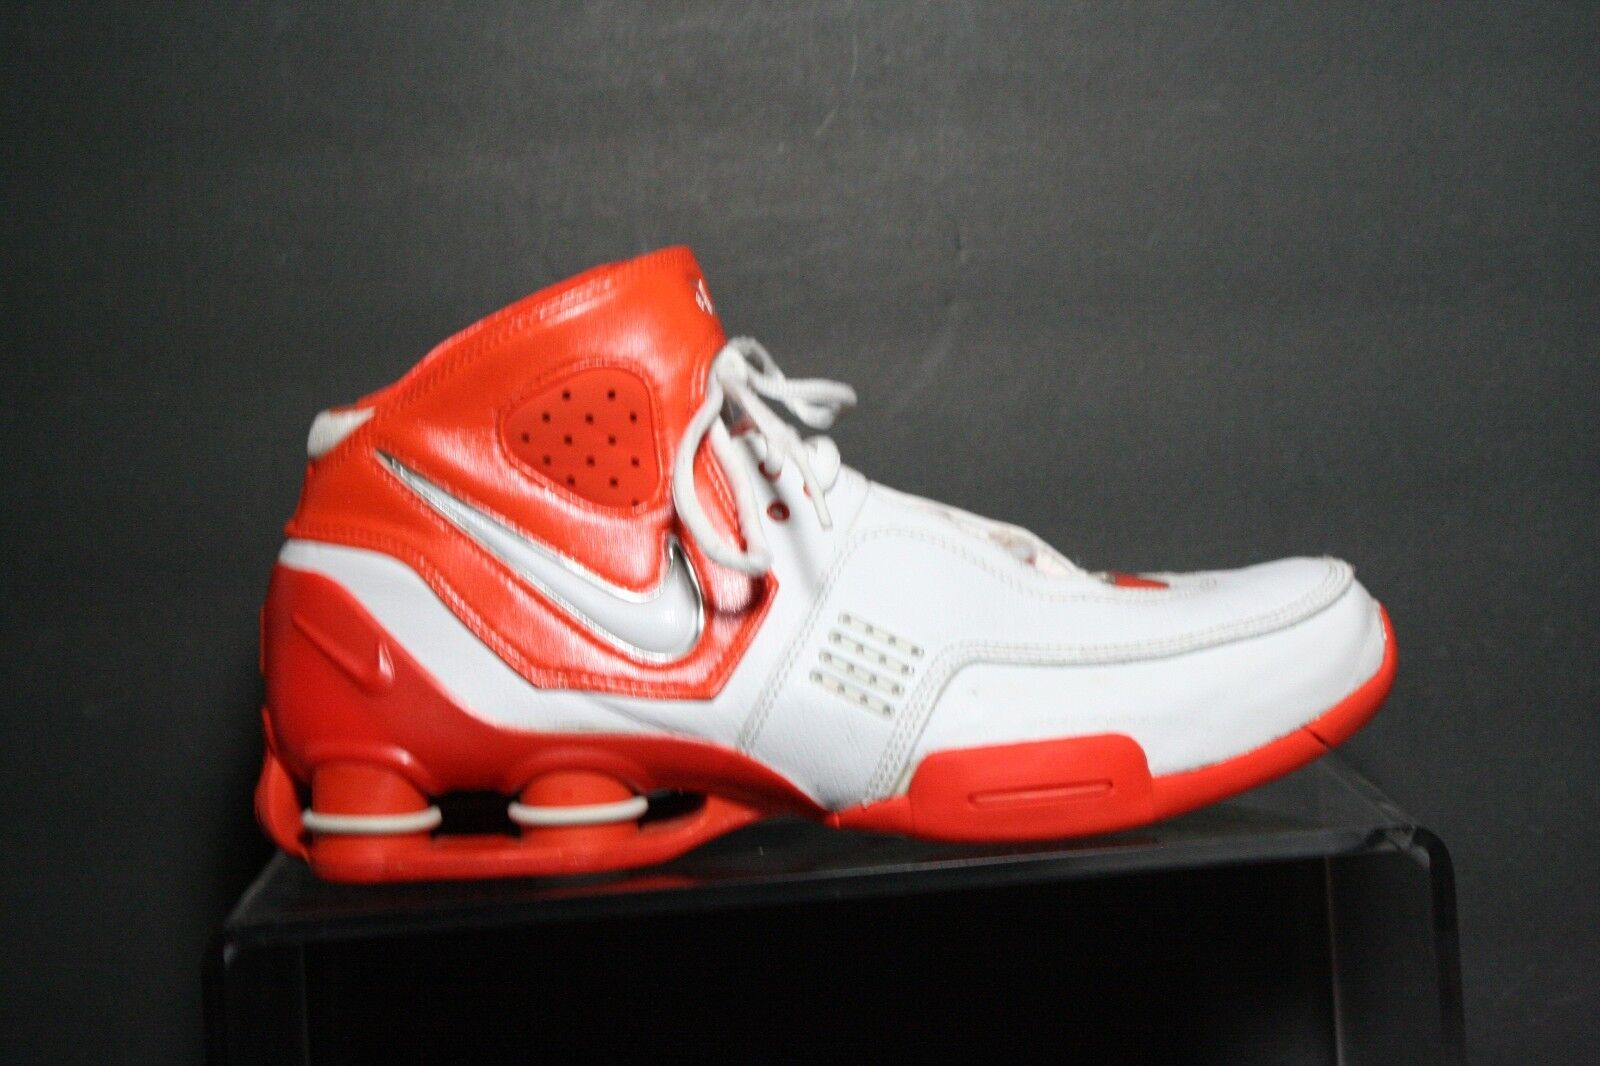 ee67deb72118f0 ... czech nike shox elite tb basketball 06 sneaker 06 basketball multi  white orange tennessee men dd81f